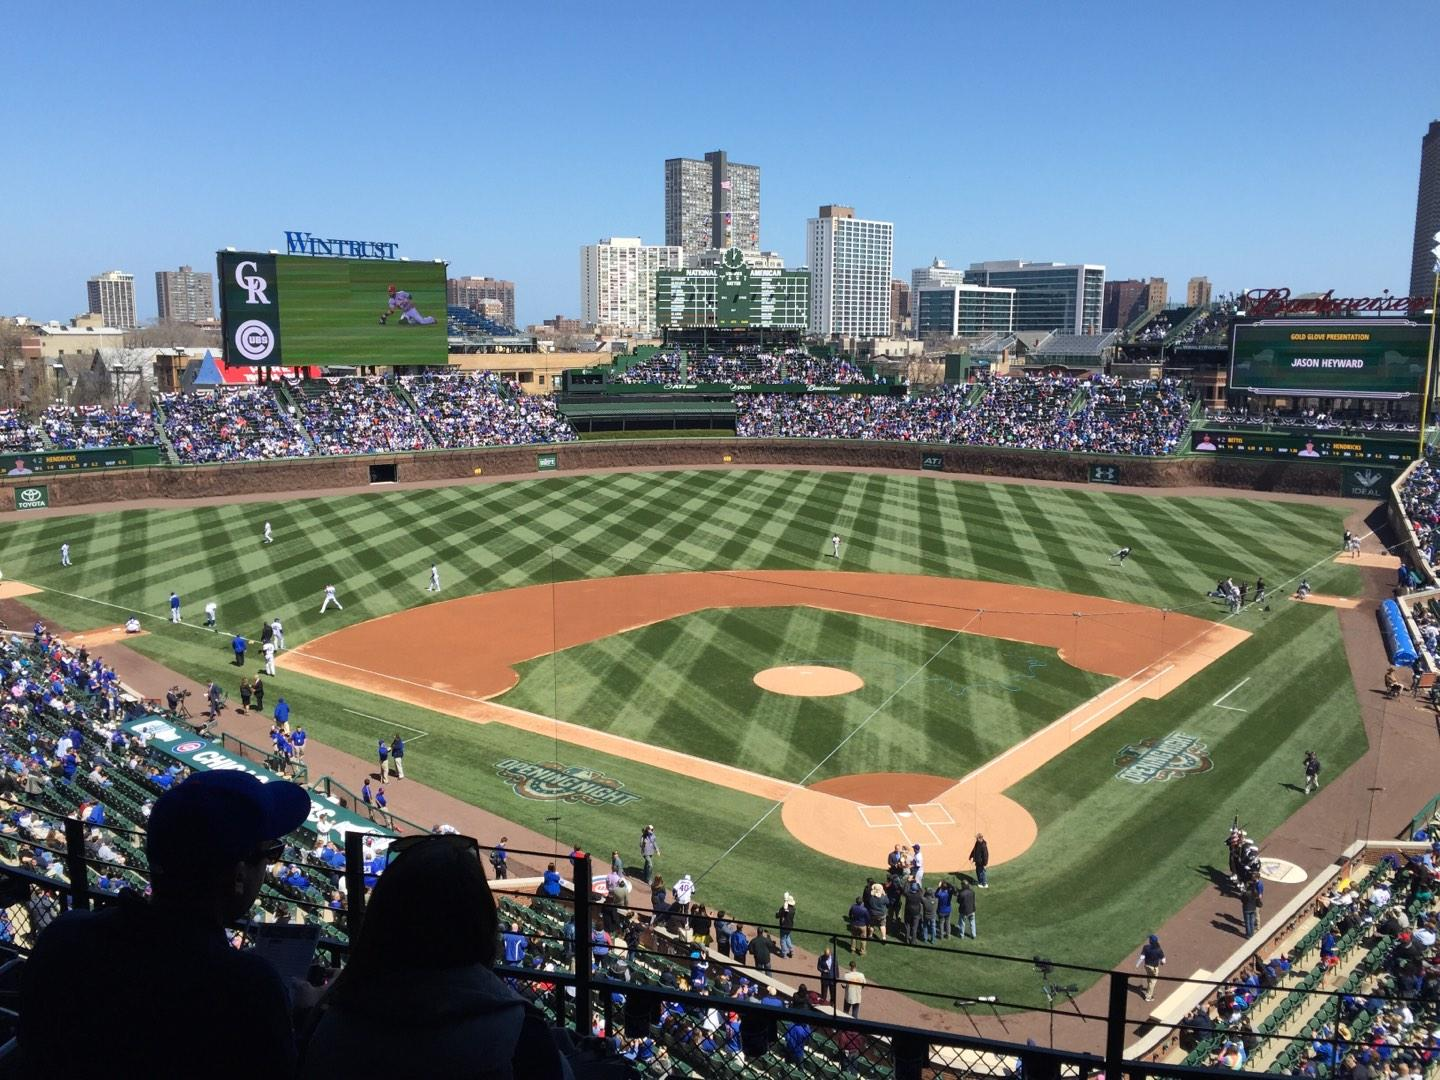 Wrigley Field section 419 row 5 seat 4 - Chicago Cubs vs ...